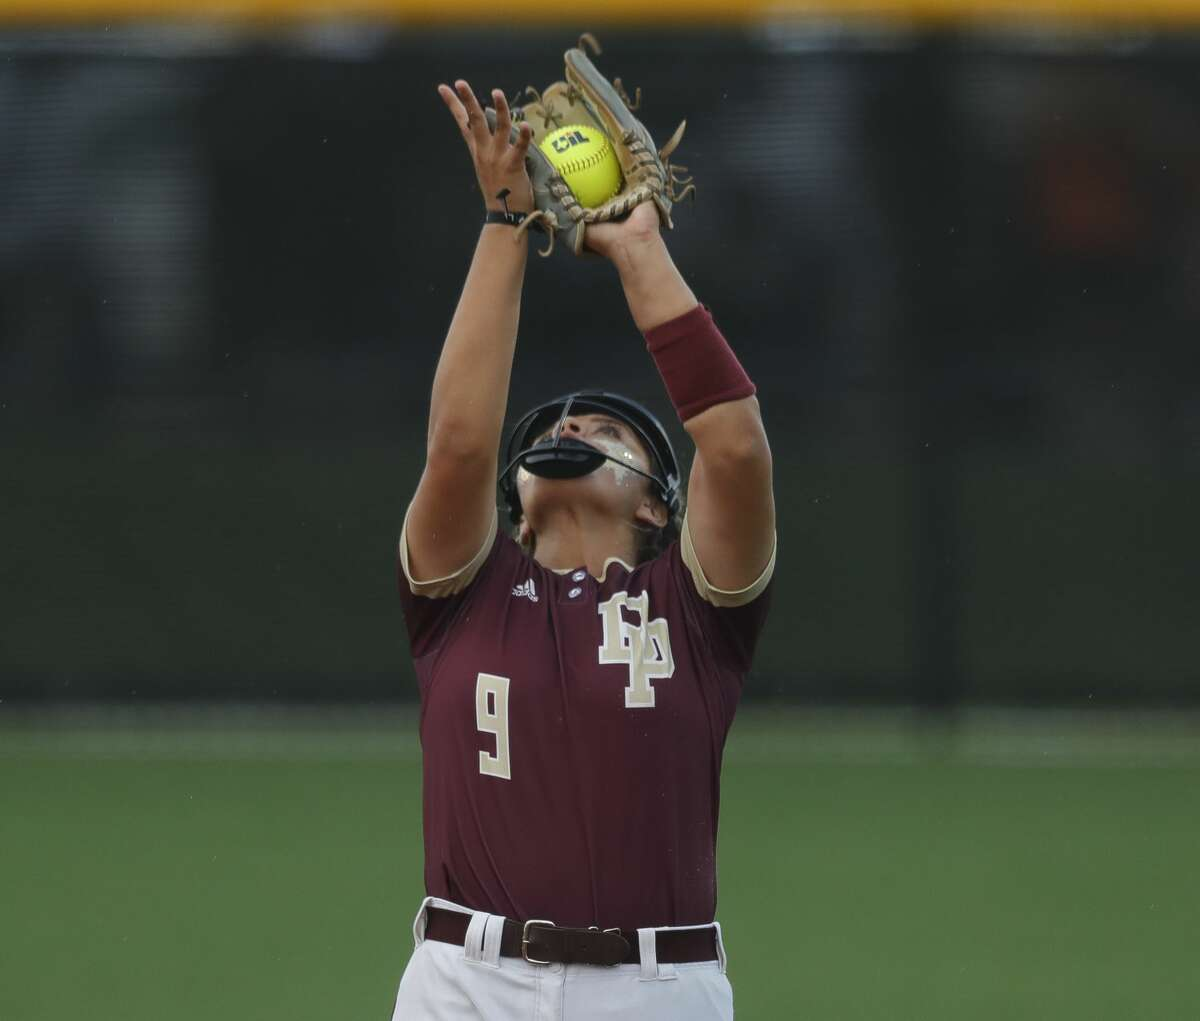 Deer Park second baseman Bryanna Fuentes (9) catches a fly ball by Carsyn Lee #8 of Flower Mound in the second inning of a Class 6A state semifinal game, Friday, June 4, 2021, in Leander.